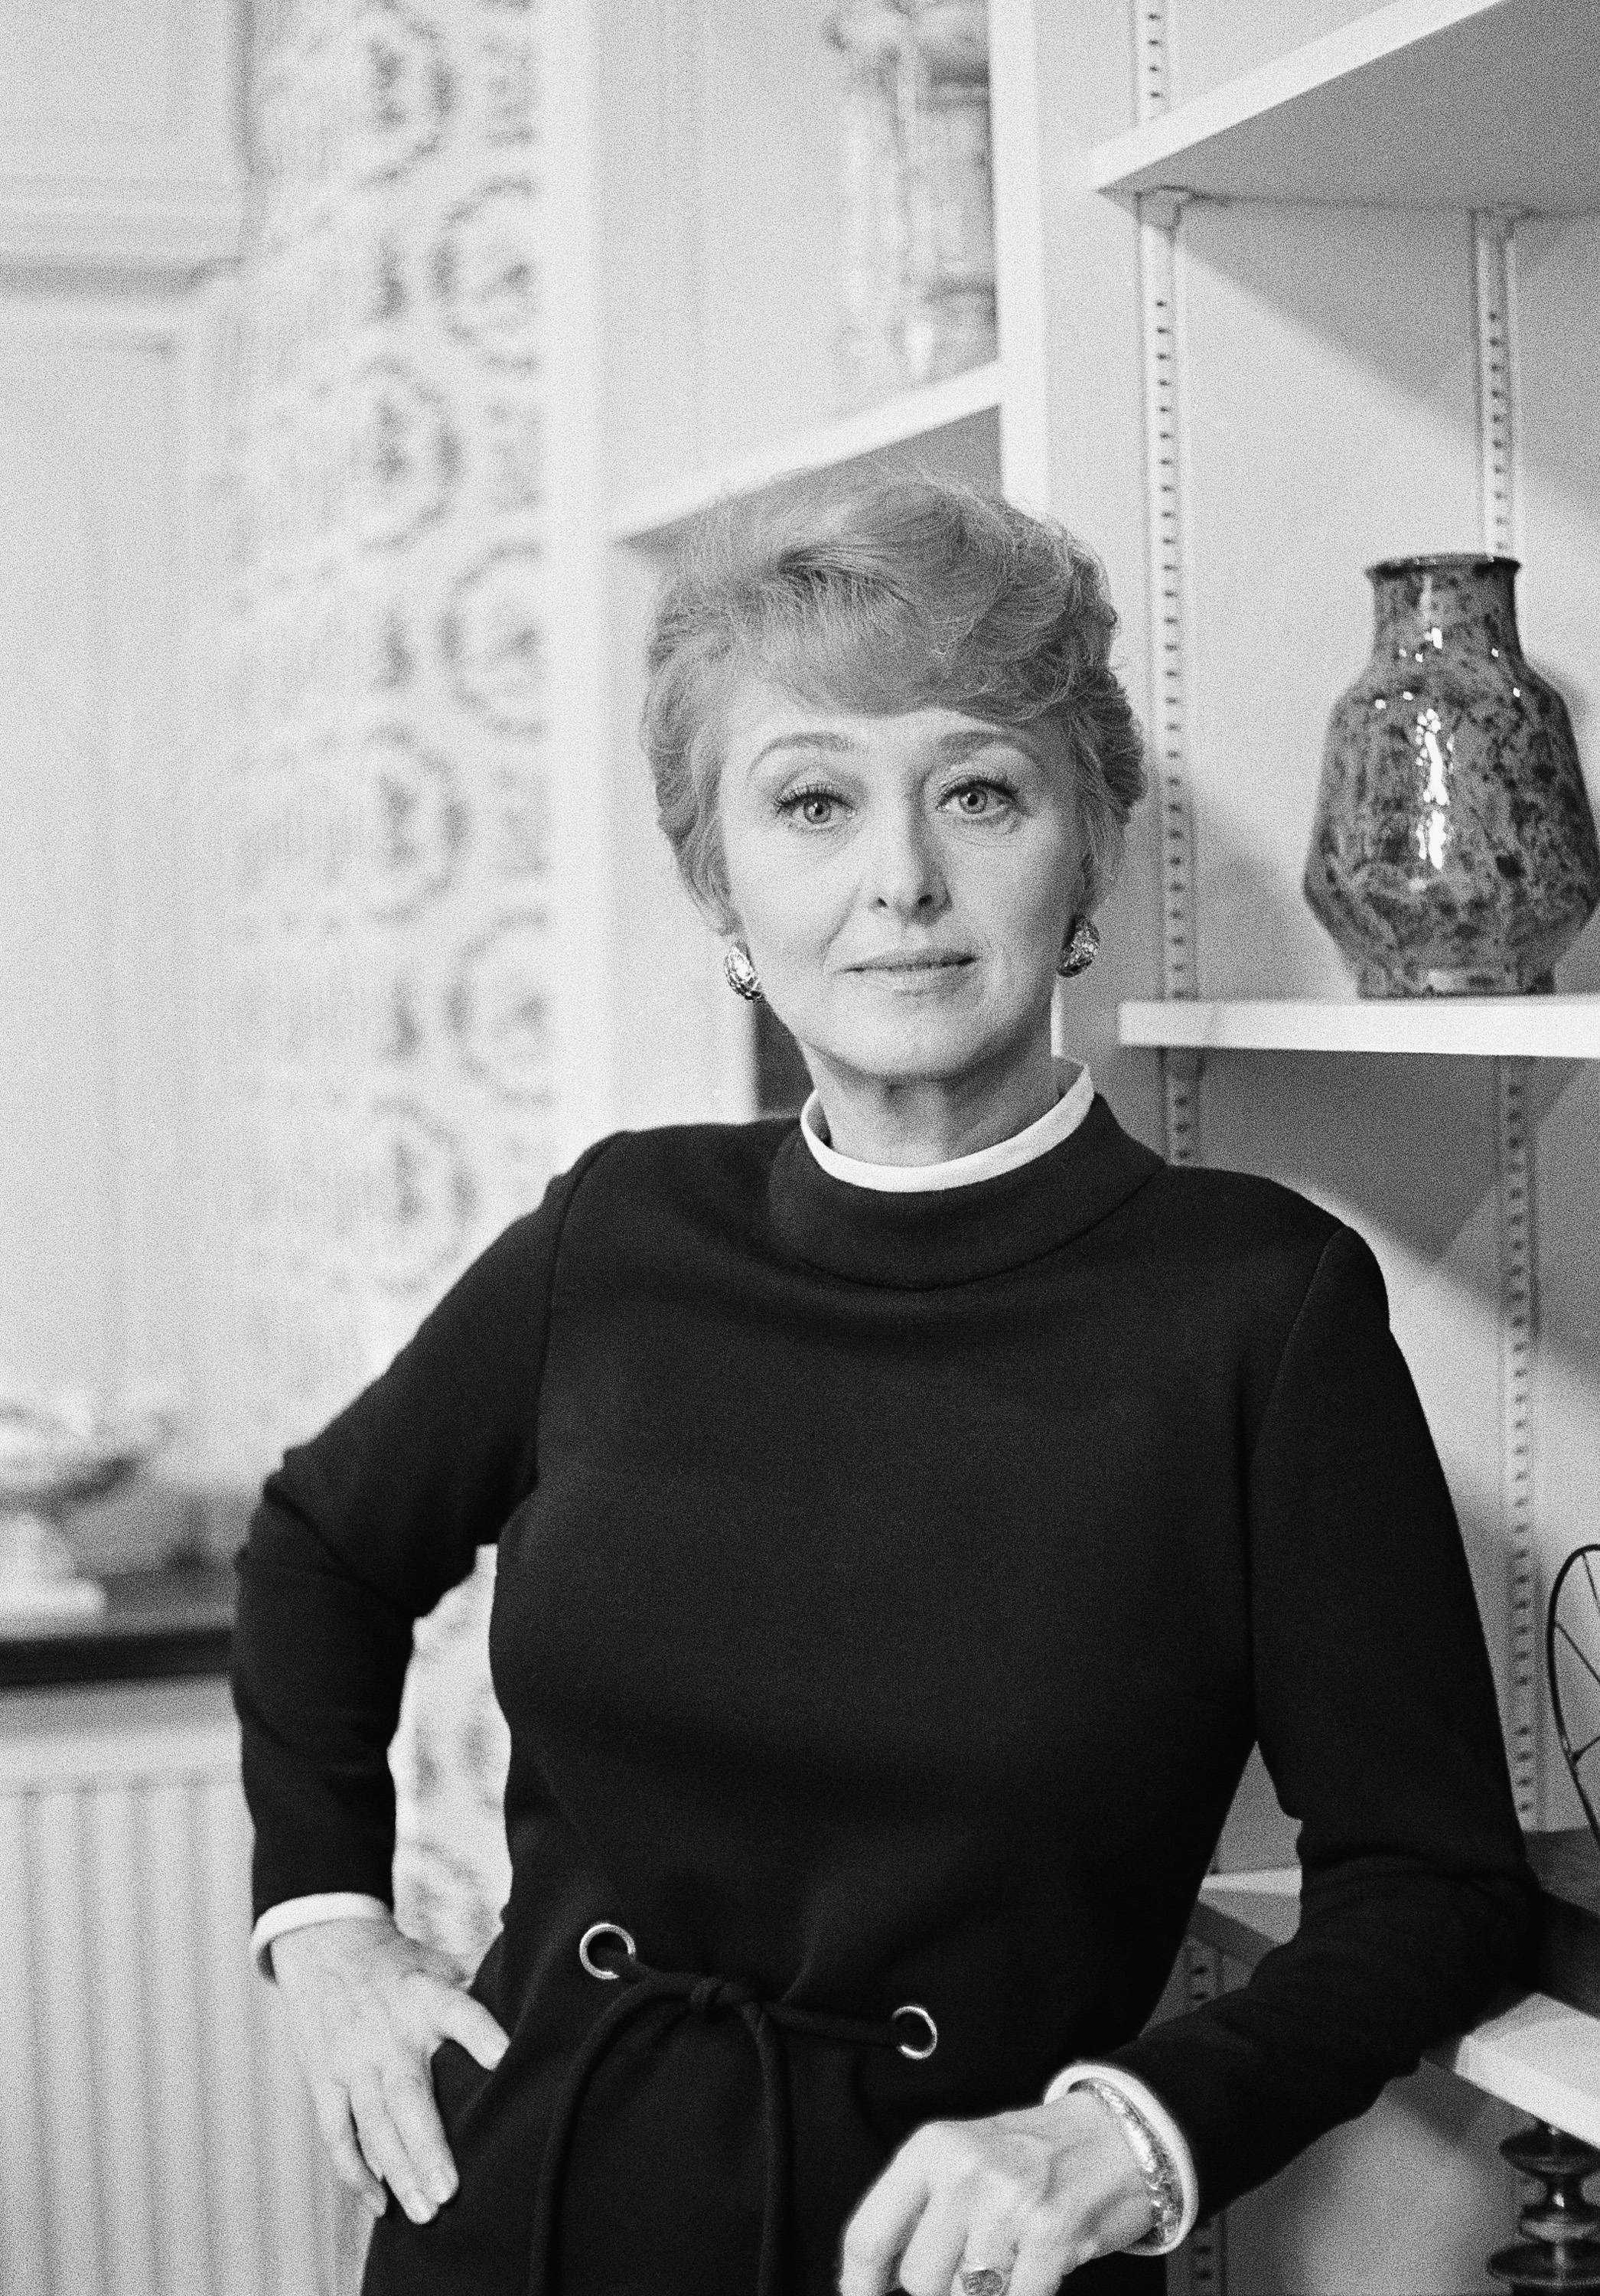 Oscar-winning actress Celeste Holm was best known for roles in Gentleman's Agreement, All About Eve and Oklahoma!